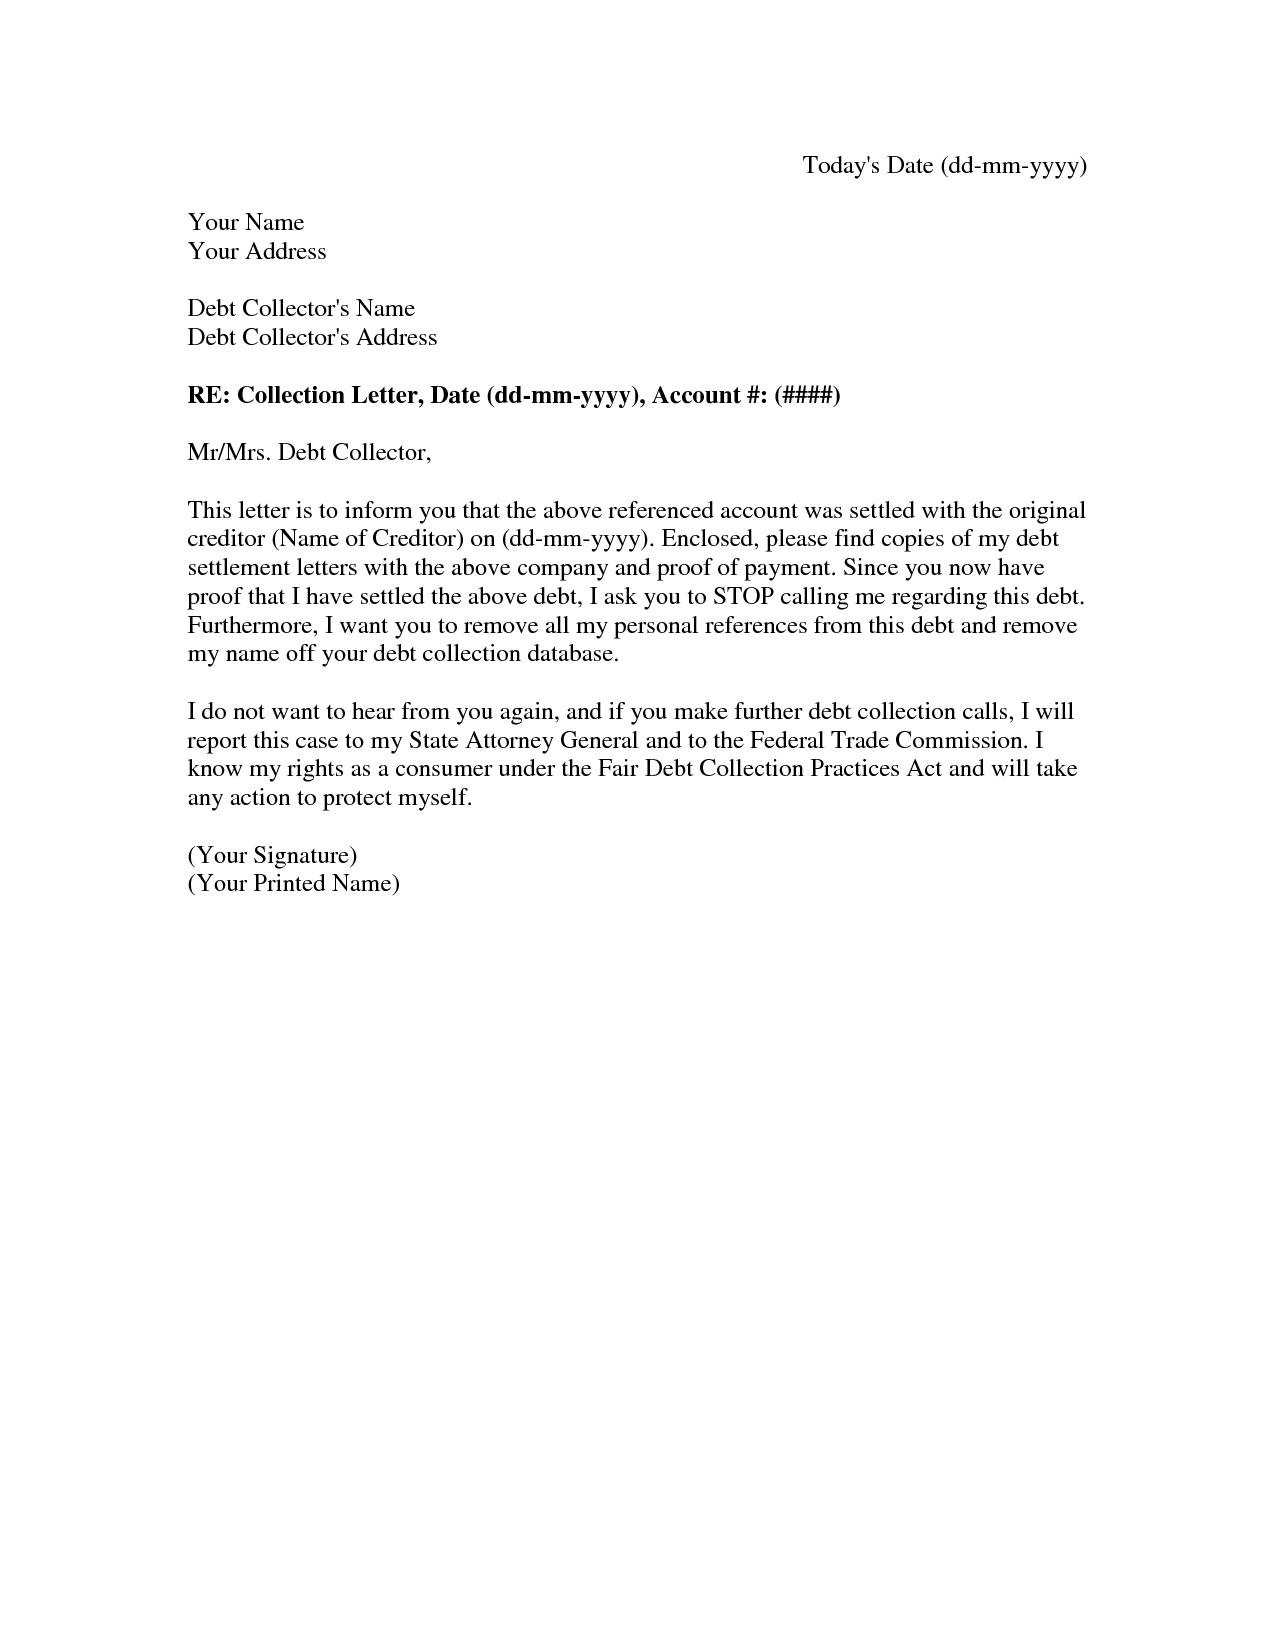 Collection Settlement Letter  A Debt Settlement Agreement Letter